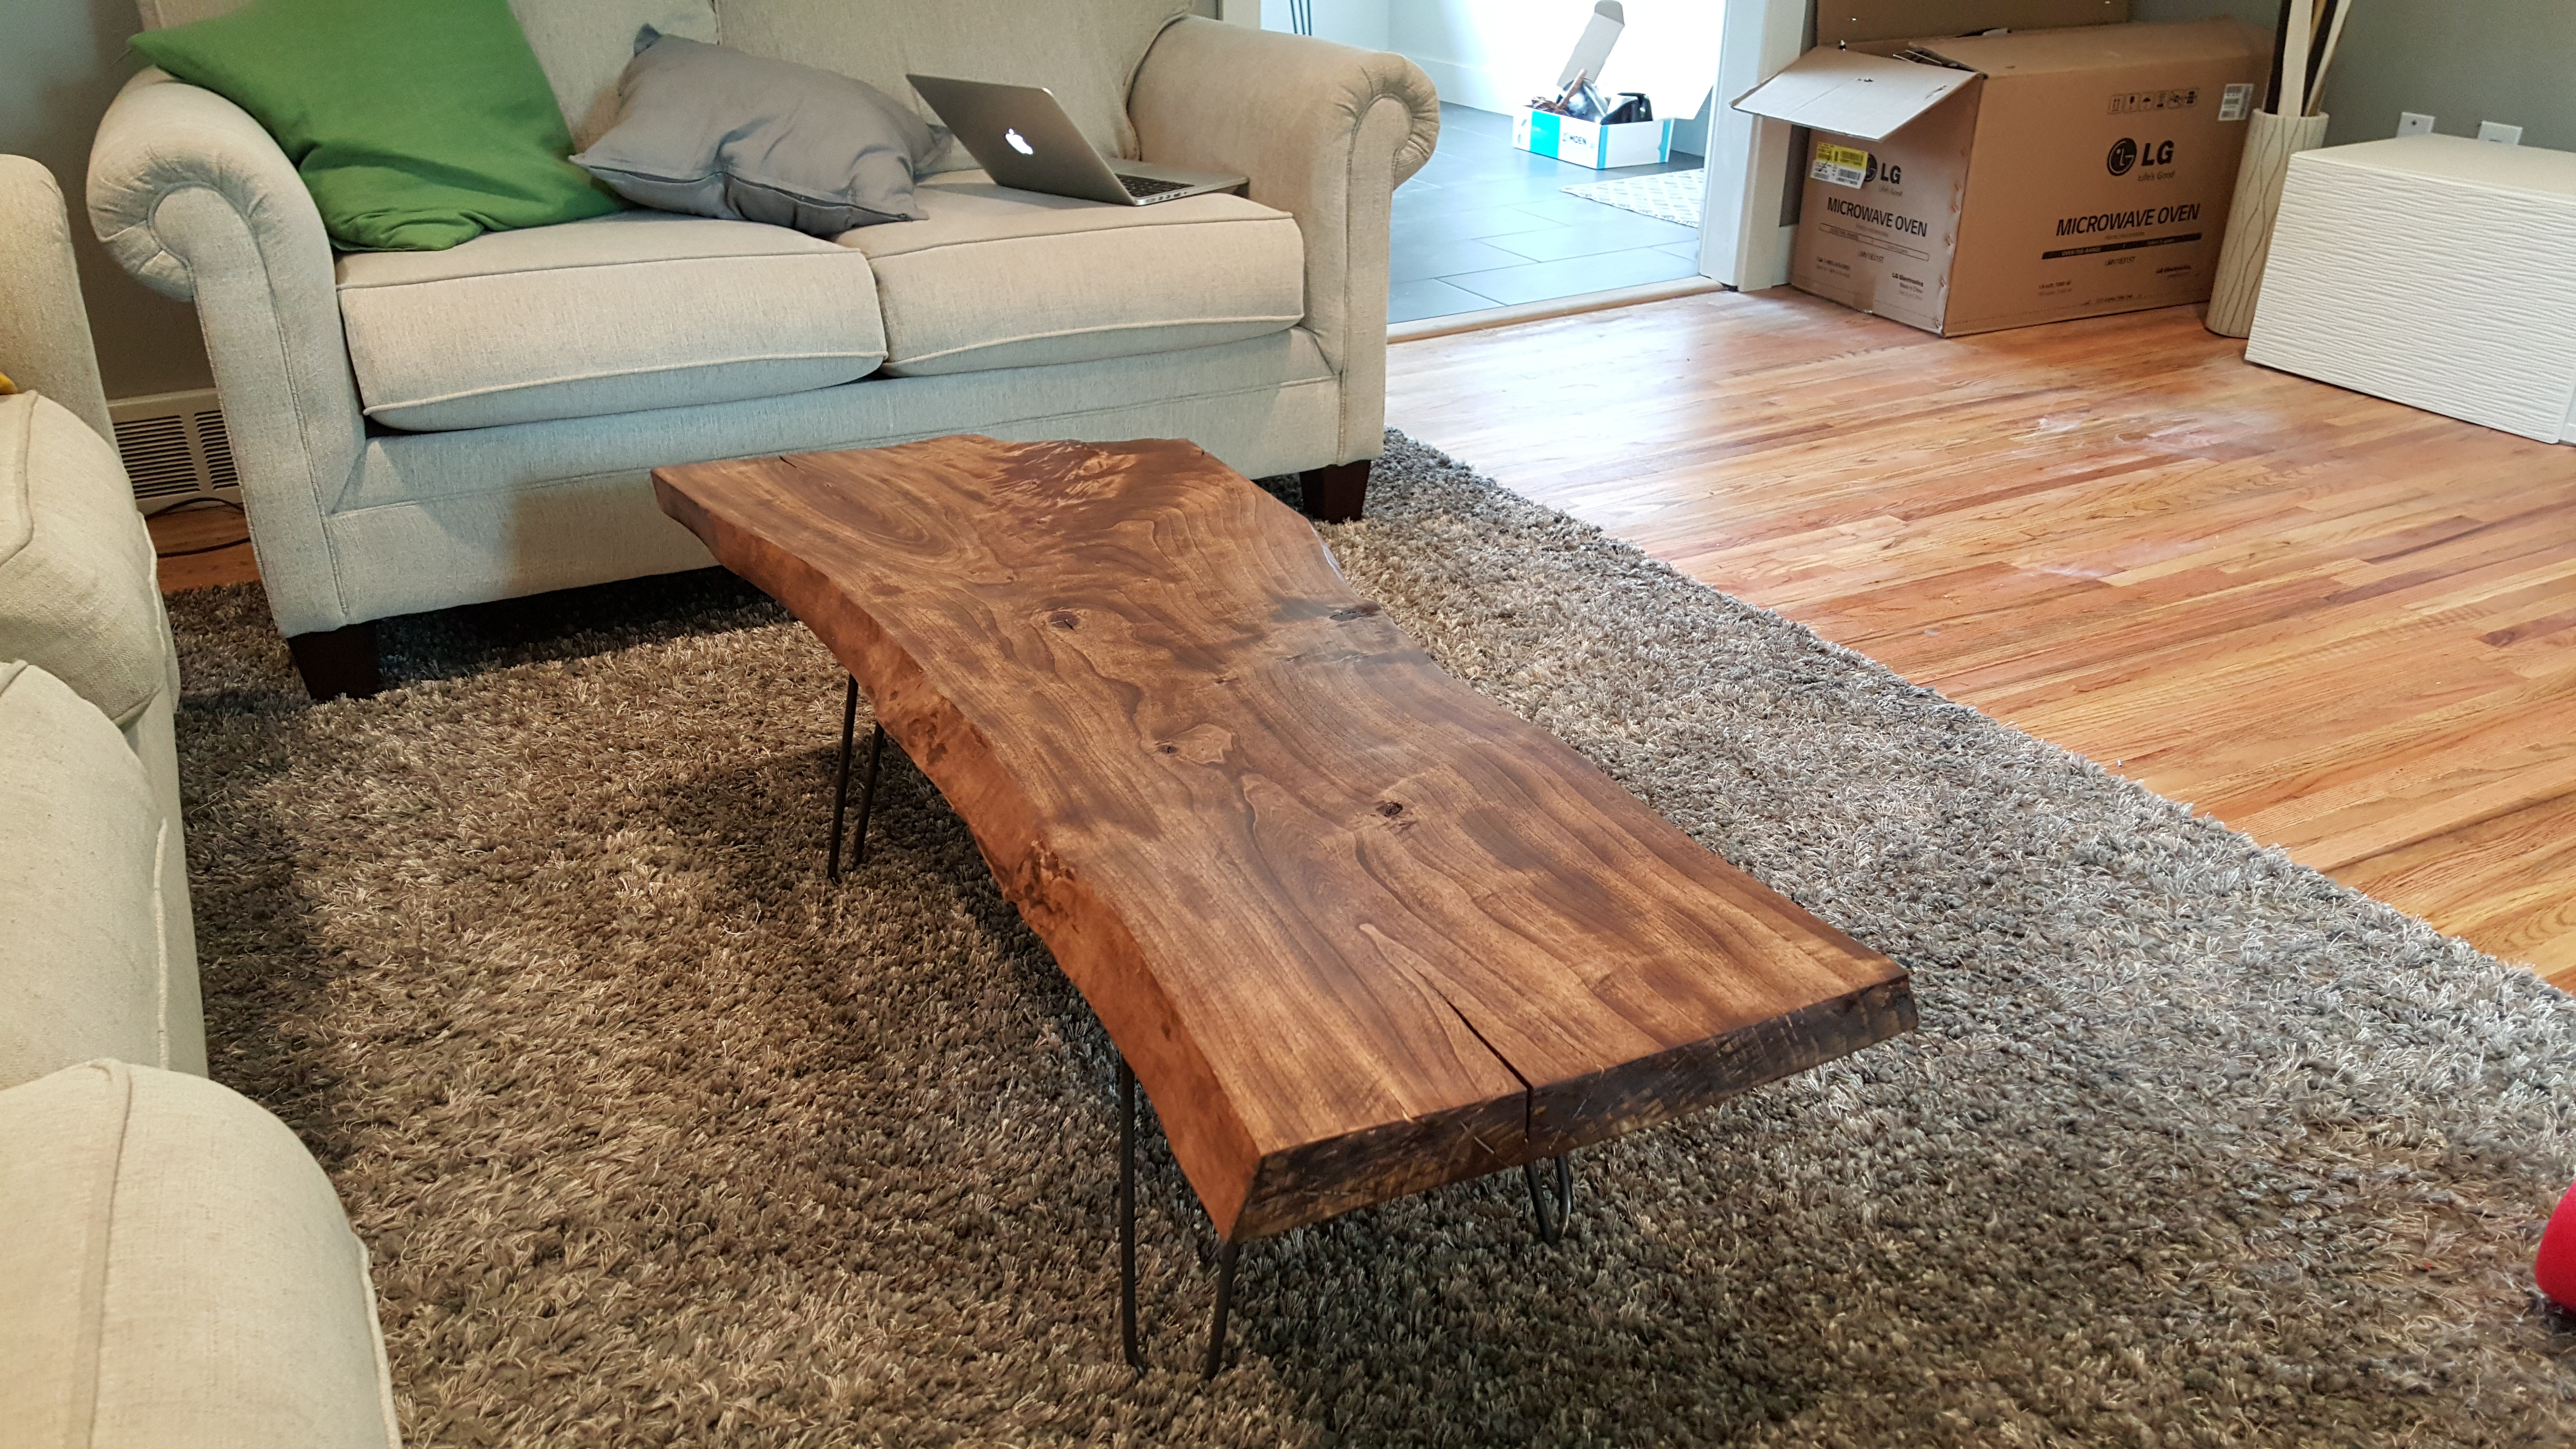 dark pine end table probably perfect live wood attractive living room img jodiqueenan good looking wooden beautiful full size bathroom distressed refinishing old furniture small